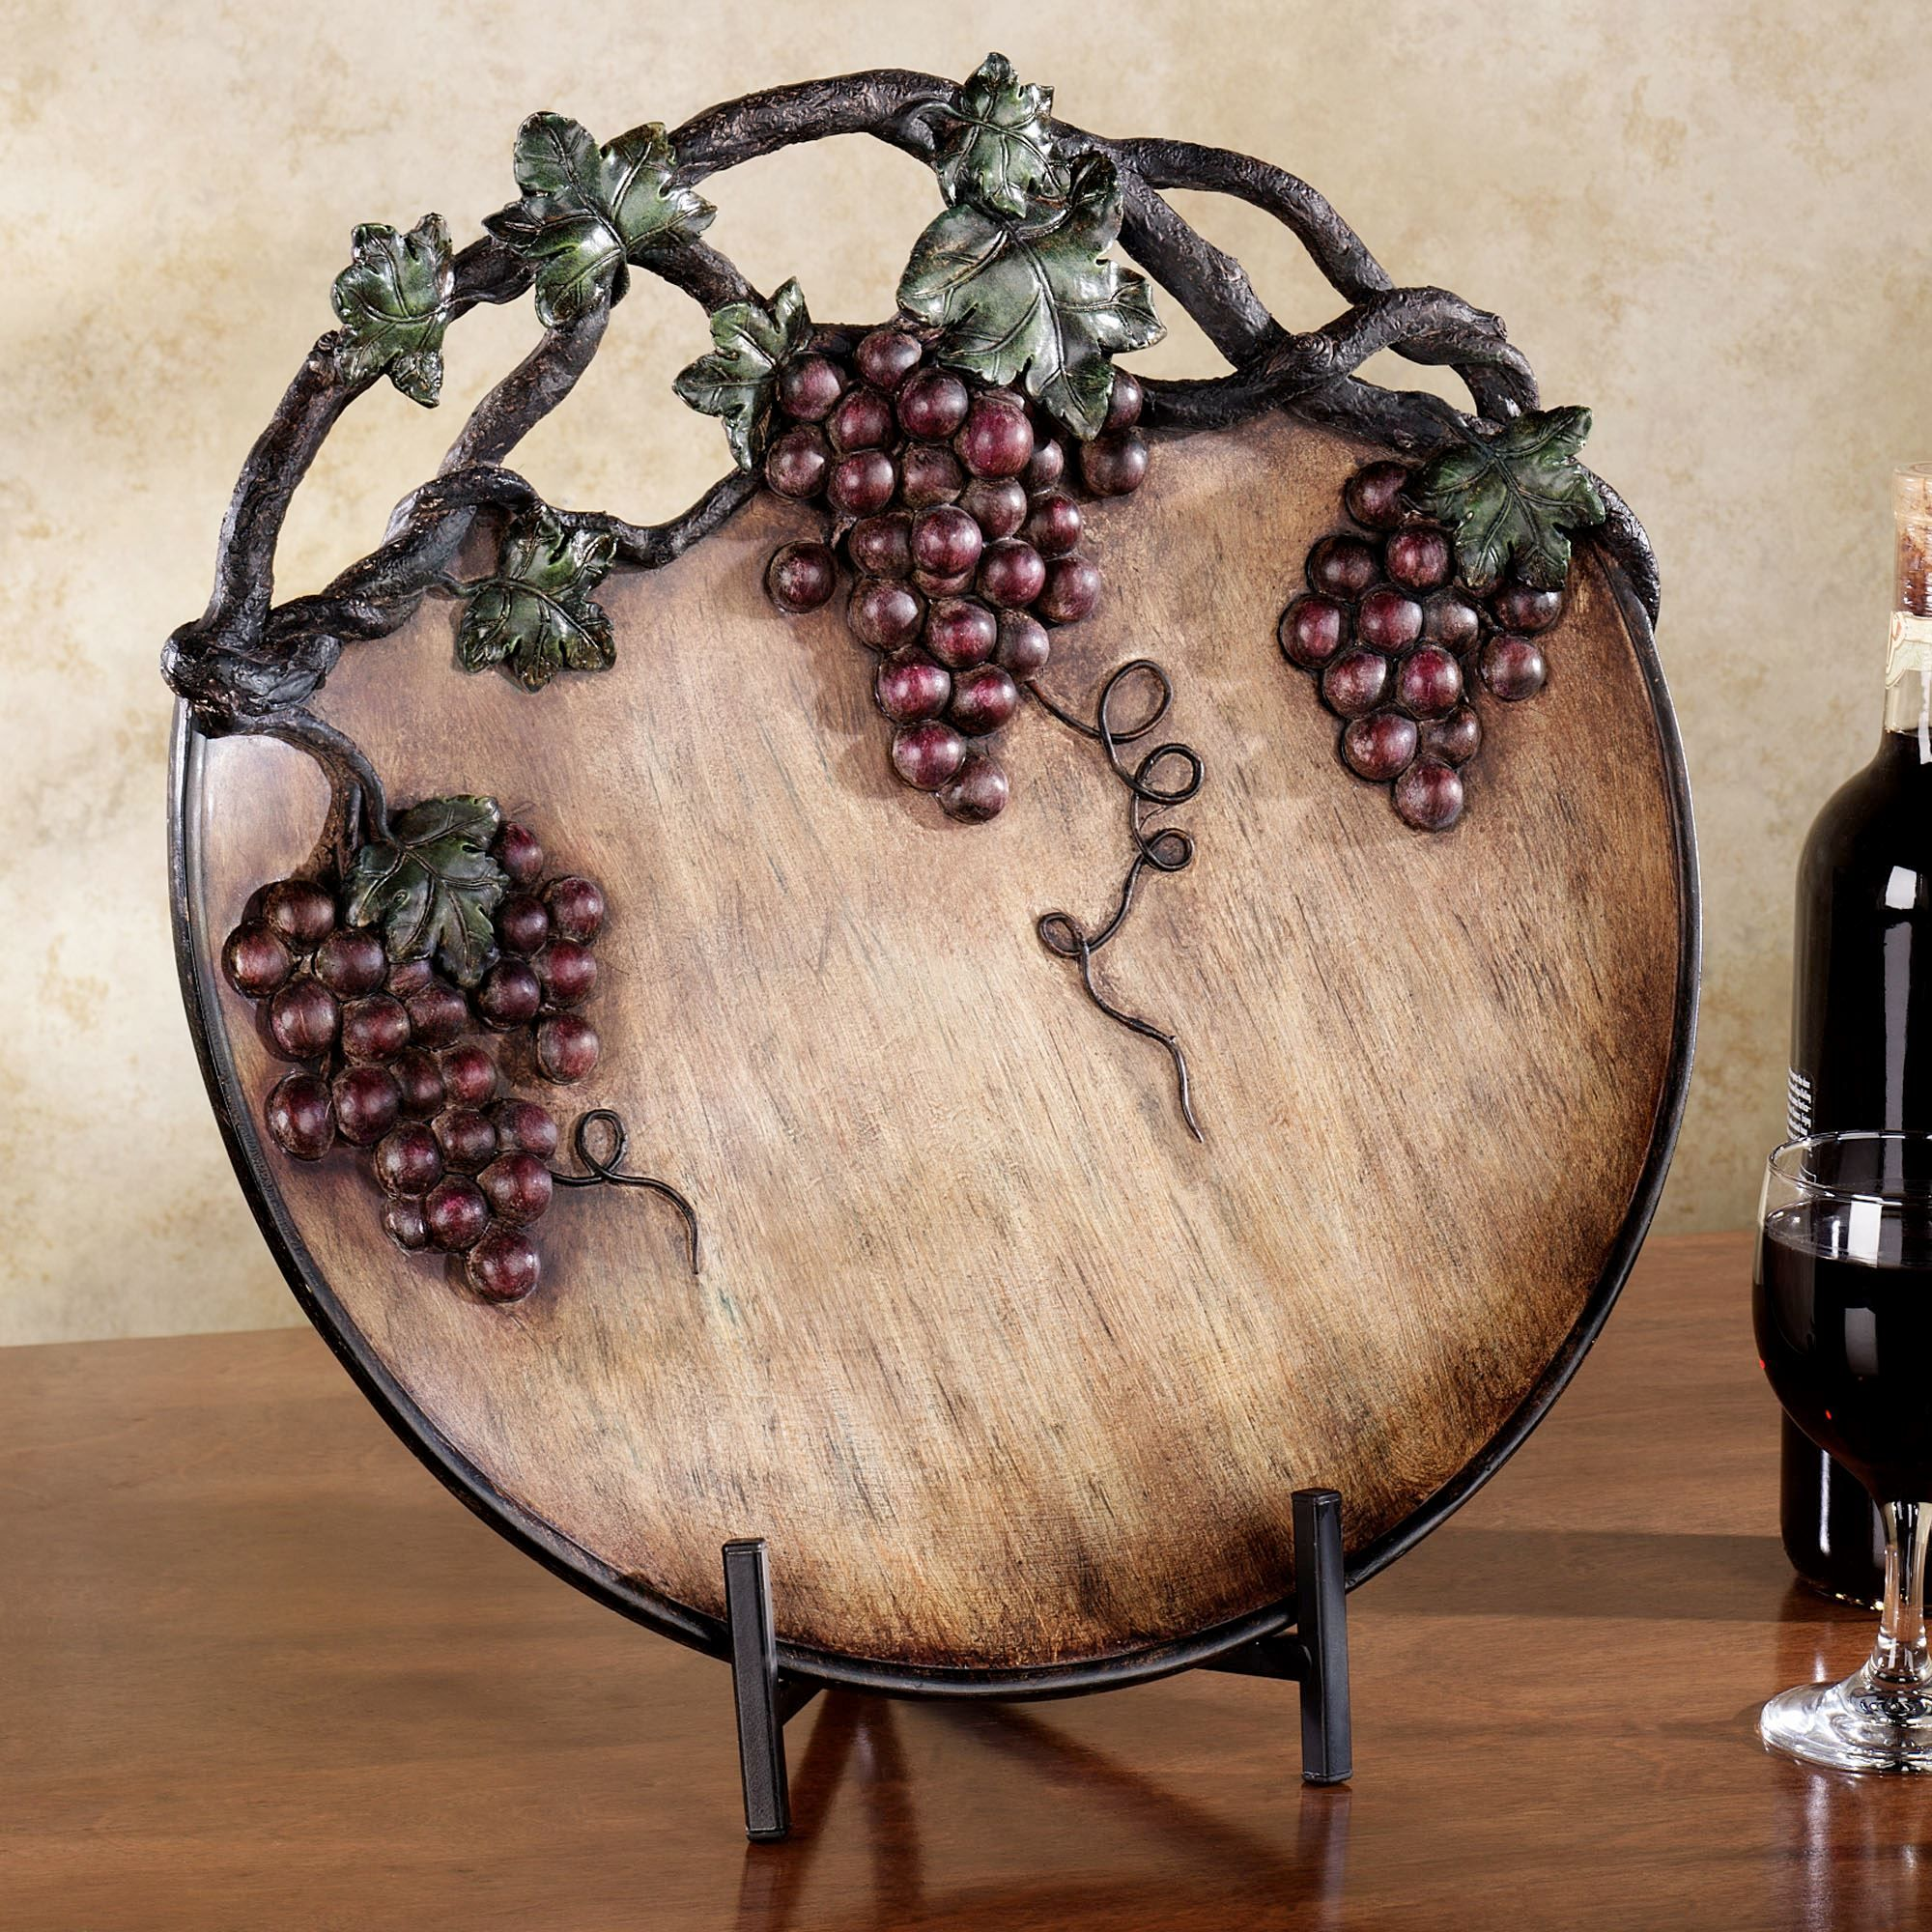 Grape Harvest Charger Plate Port | Home Decor: Decorative Chargers ...